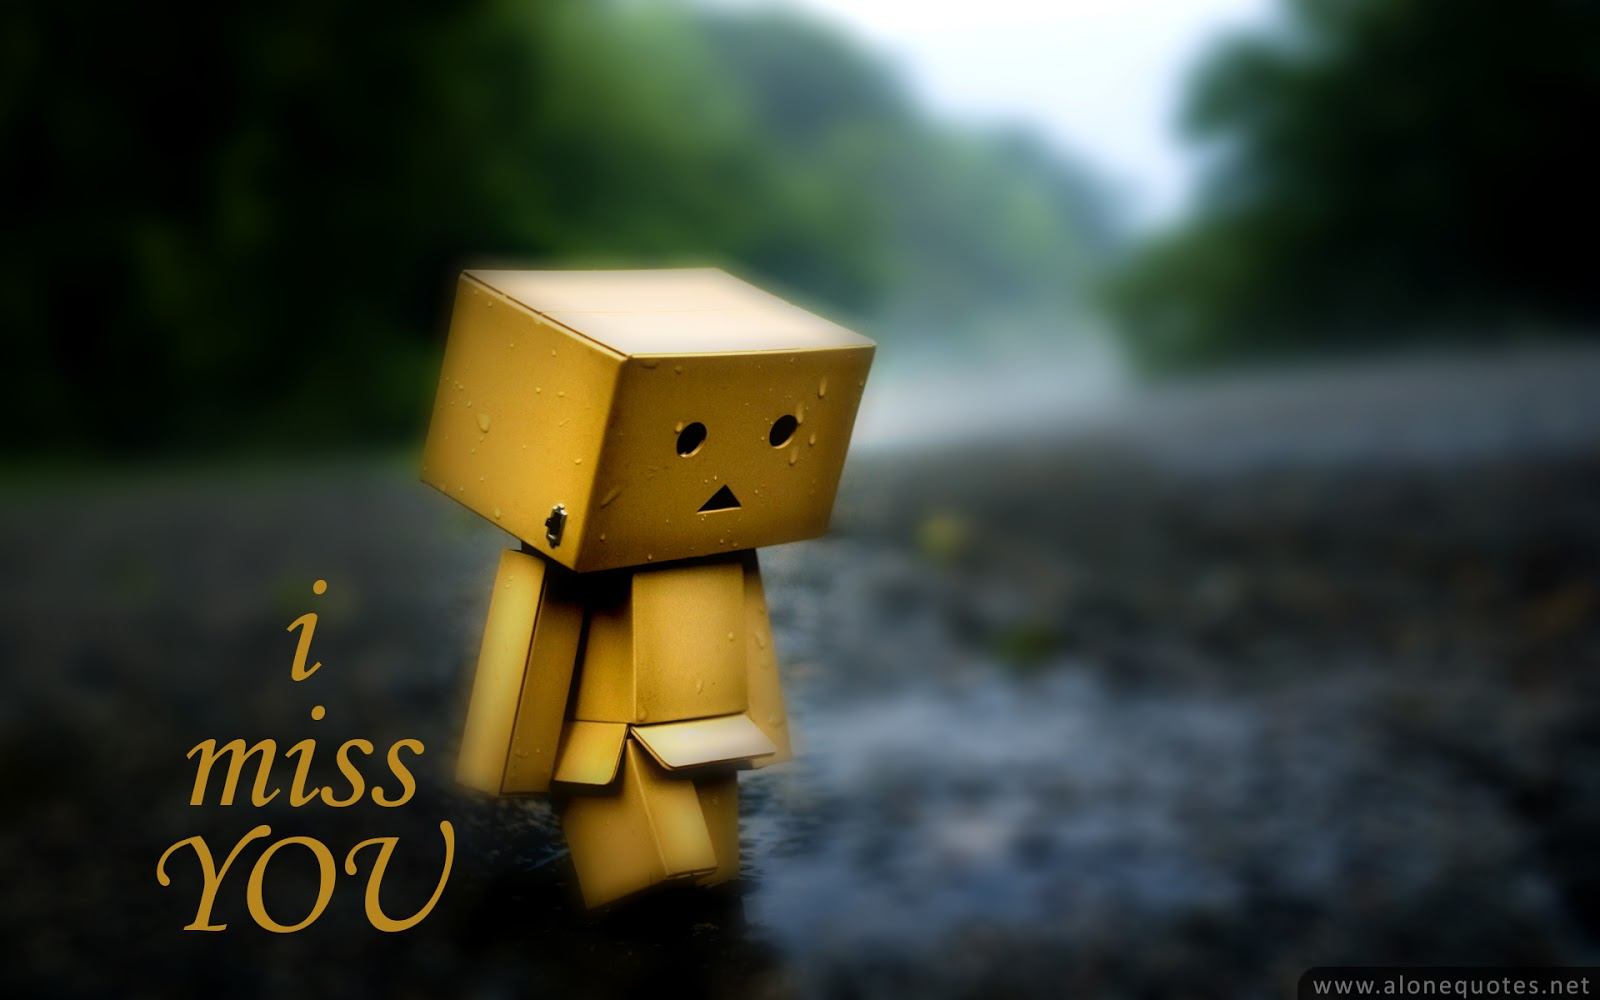 miss you hd wallpapers i miss you high quality wallpapers 1600x1000